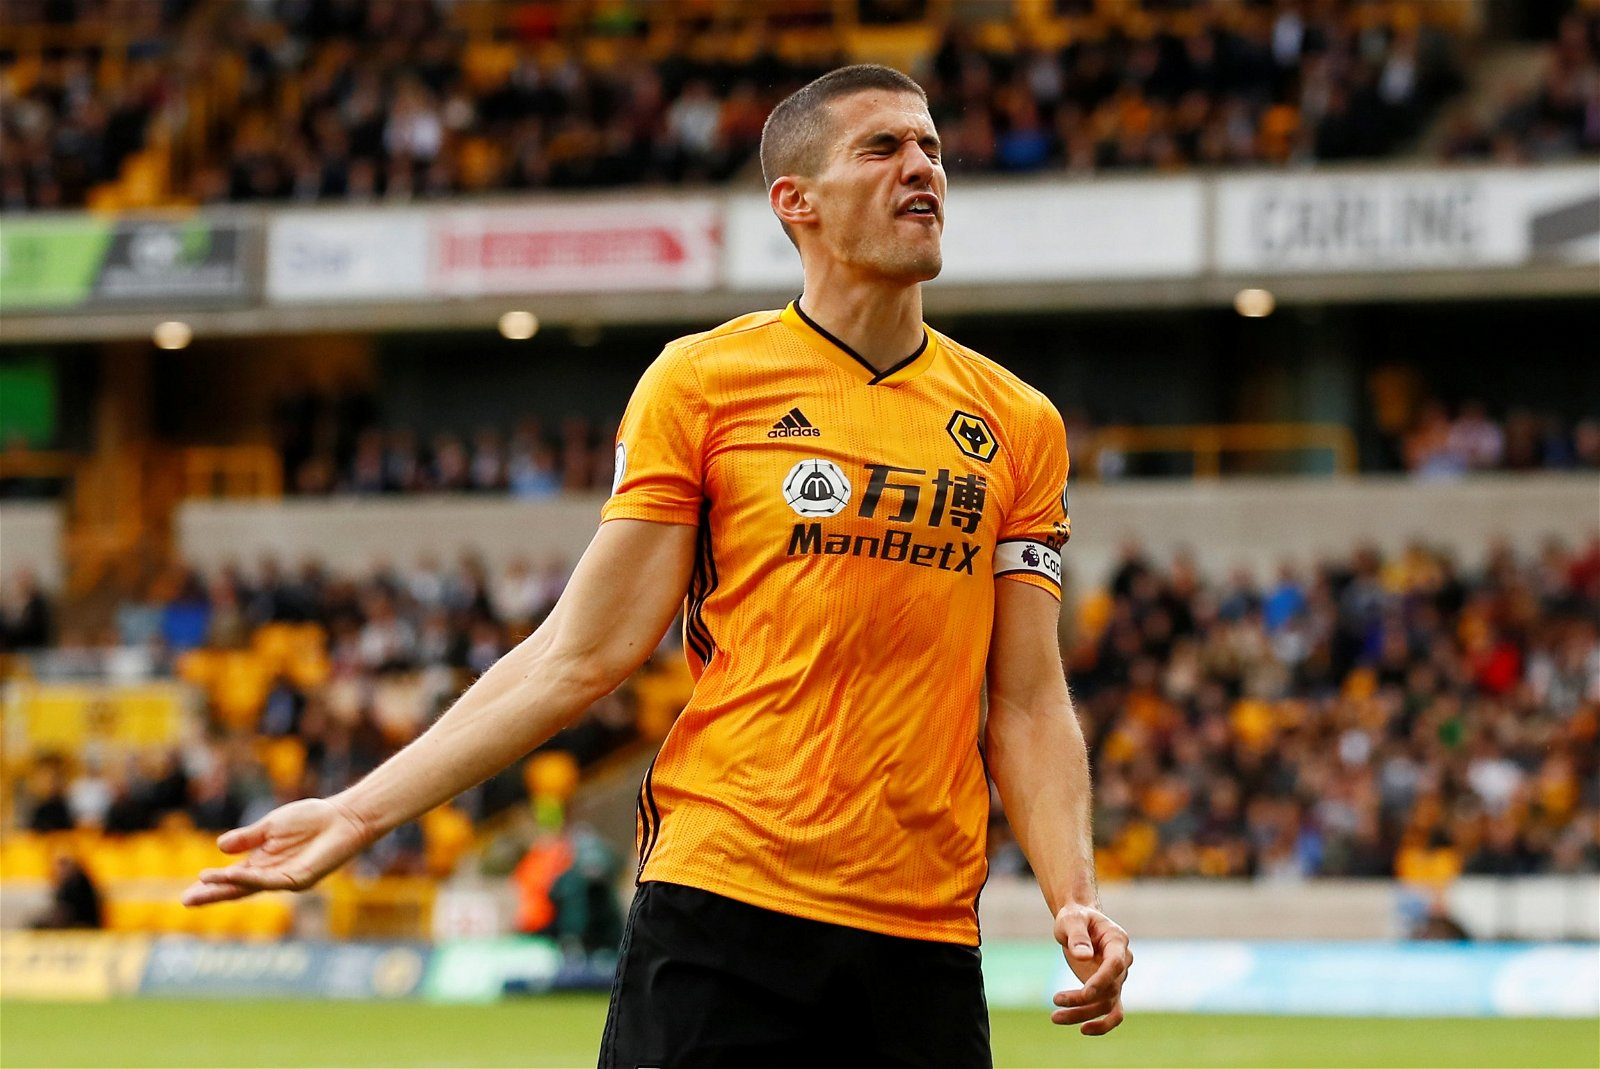 Conor Coady finds interesting way of keeping himself entertained while at home | FootballFanCast.com